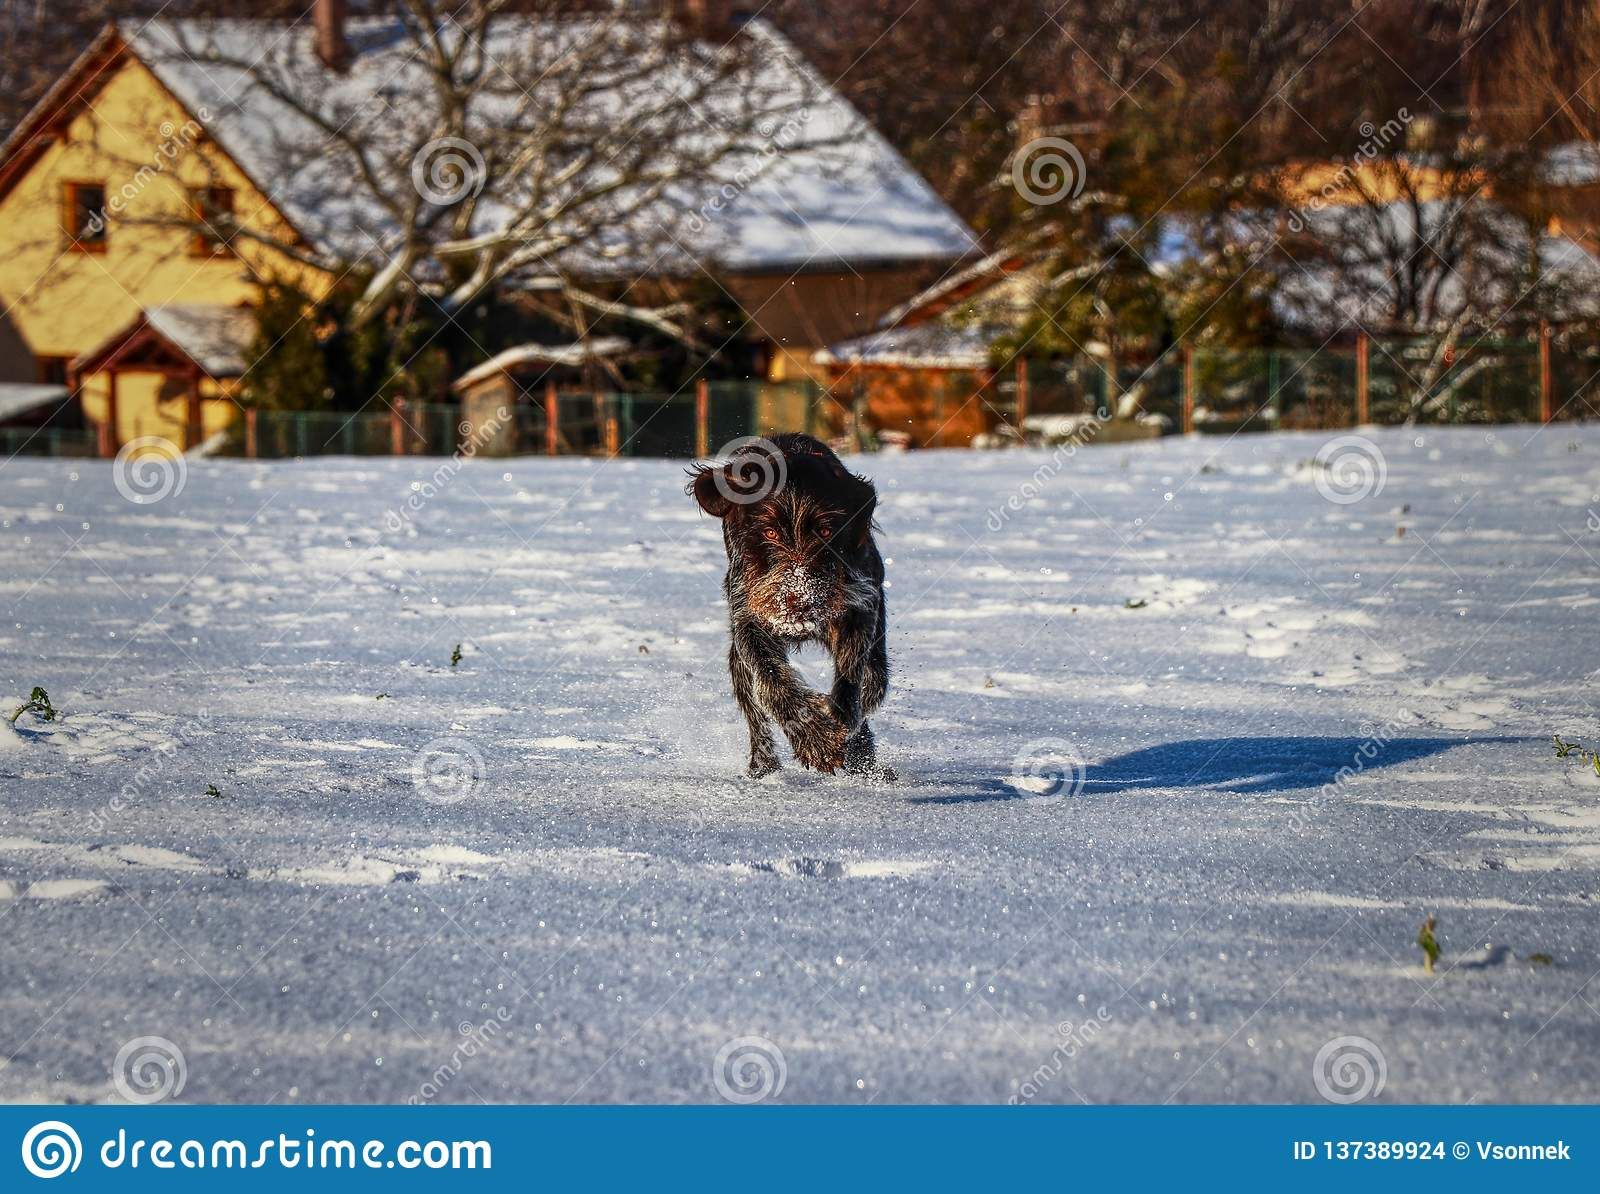 A Bohemian Wire-haired Pointing Griffon or korthals griffon running in snow straight to me. So playful female dog. Brown body full